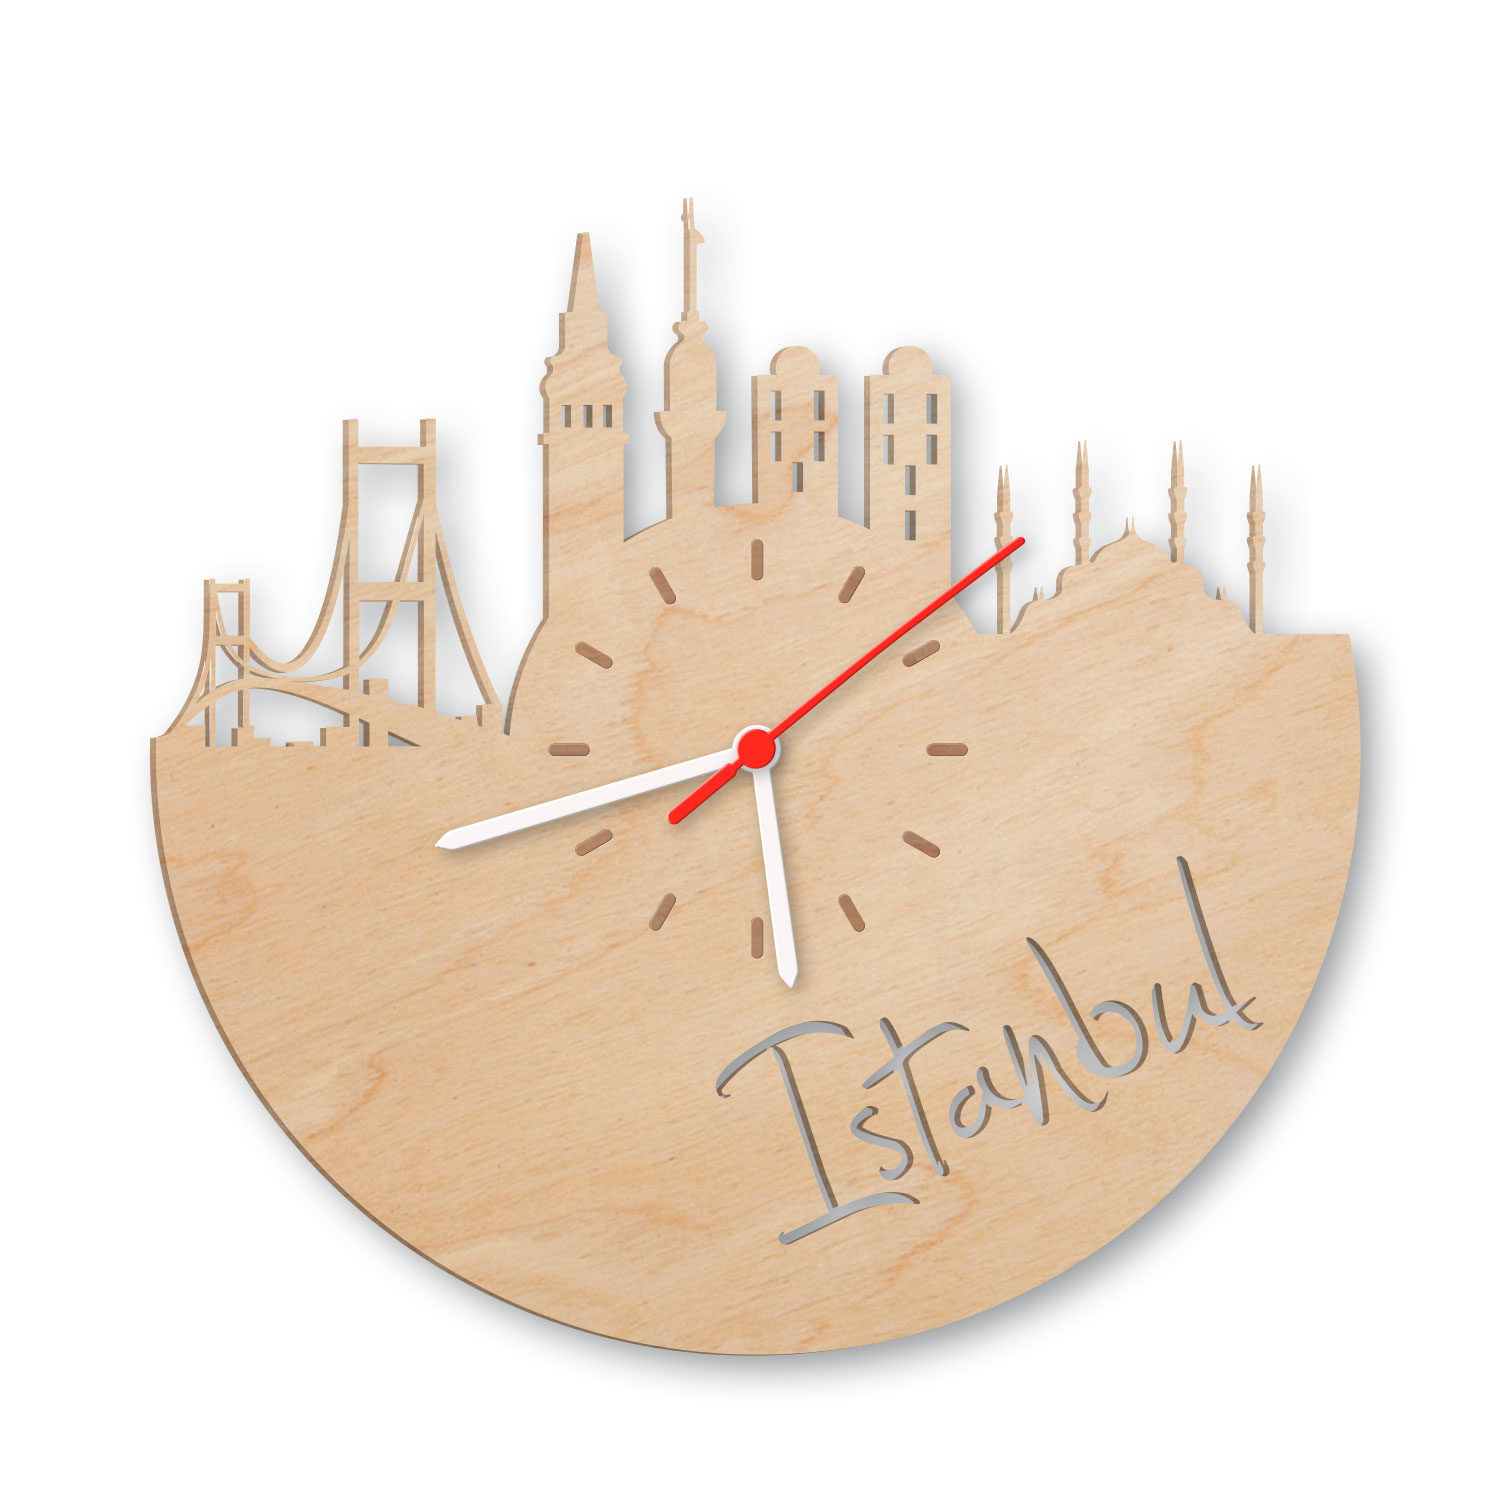 wanduhr aus holz skyline istanbul einfach pers nlich schenken. Black Bedroom Furniture Sets. Home Design Ideas